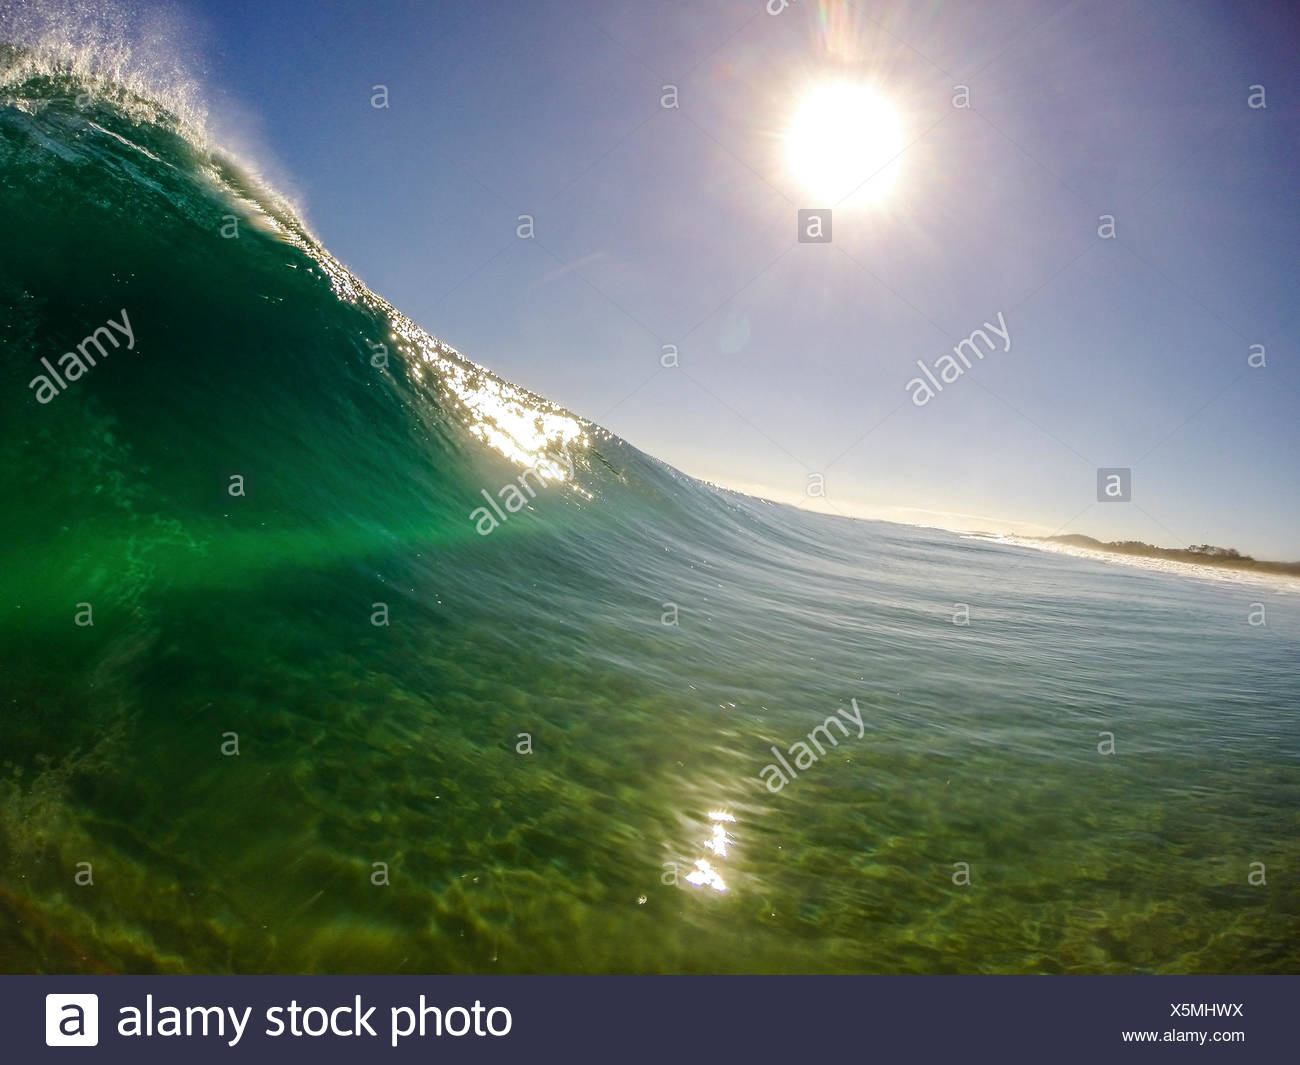 Australia, New South Wales, Wave on Black Rocks Beach - Stock Image